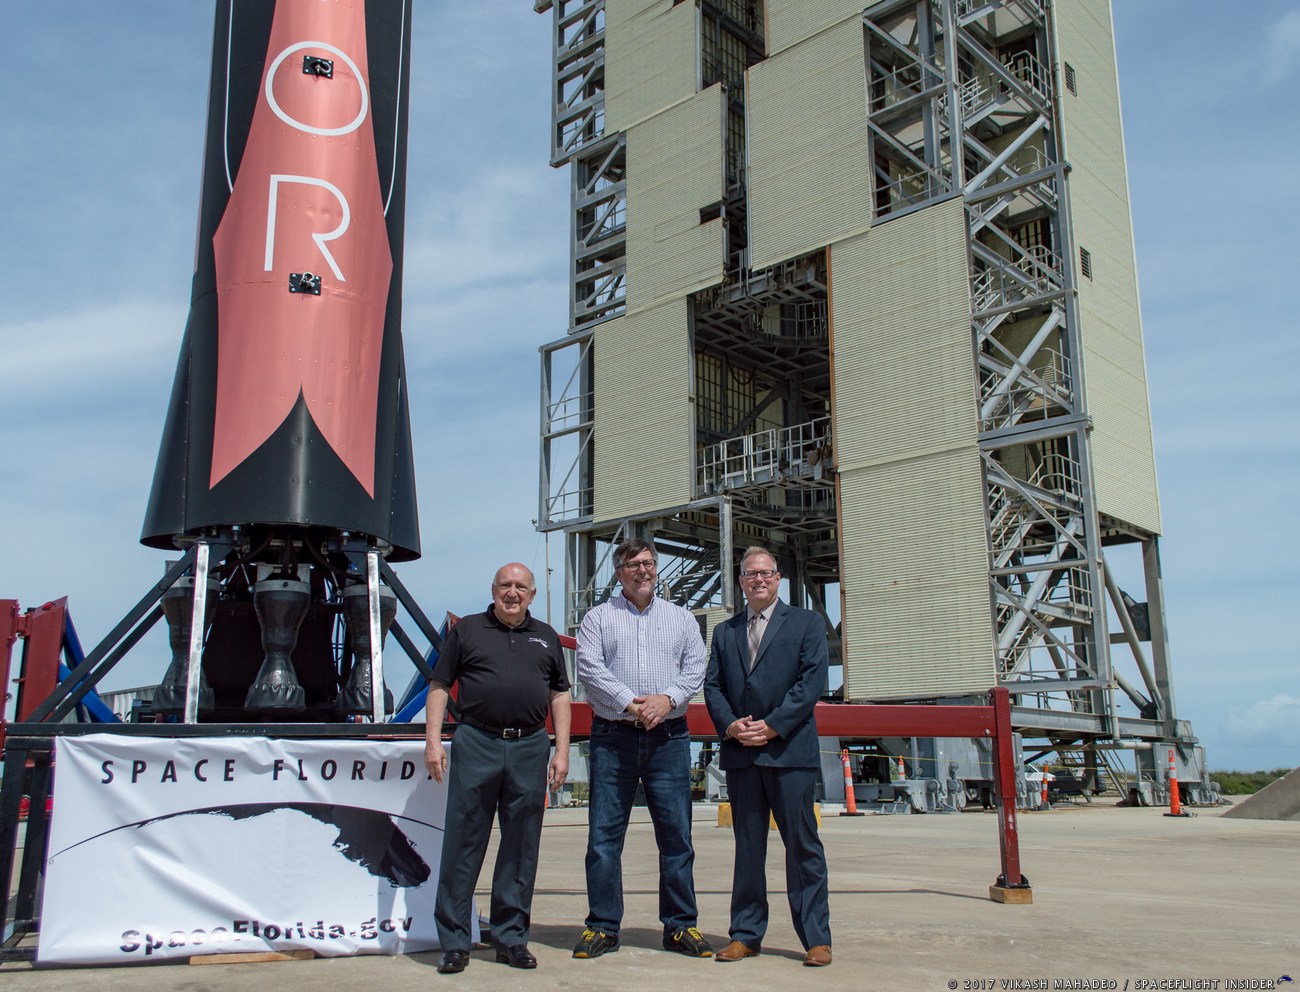 From left-to-right, Space Florida's Frank DiBello, Vector Space System's Jim Cantrell and Therrin Protze, the COO of the Kennedy Space Center Visitor Complex. Photo Credit: Vikash Mahadeo / SpaceFlight Insider